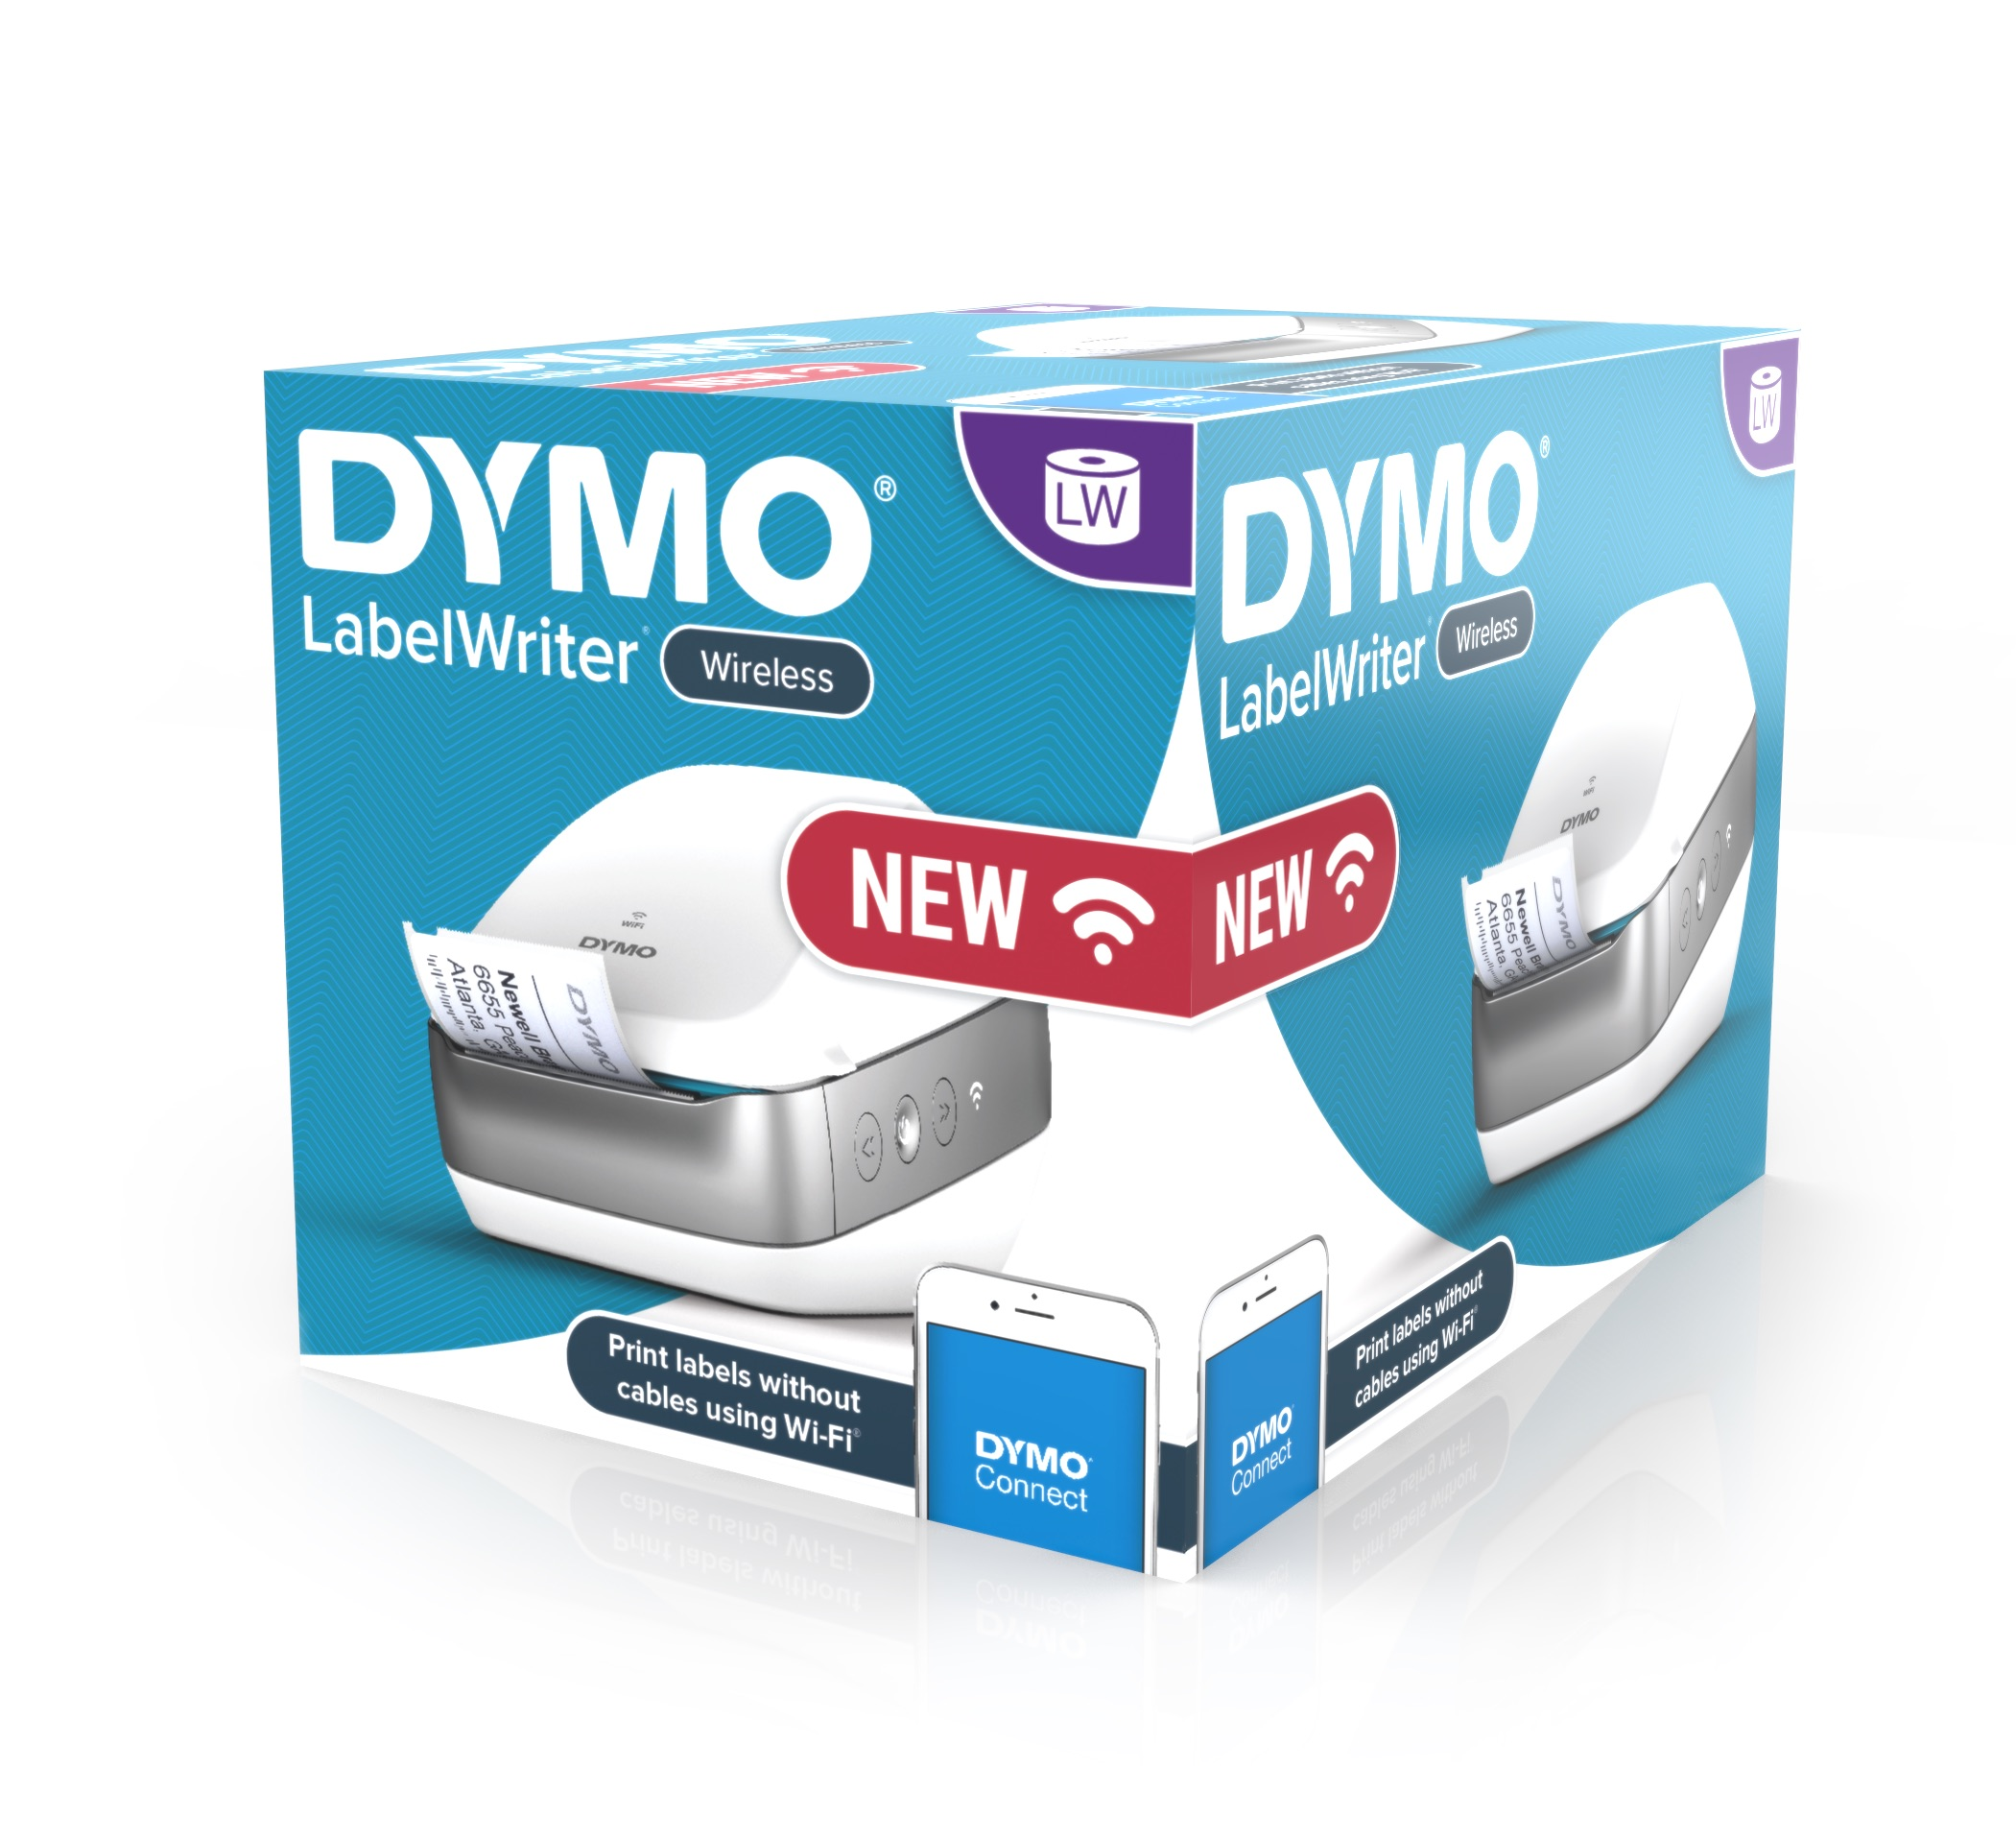 RS Components introduces new DYMO wireless label printer for